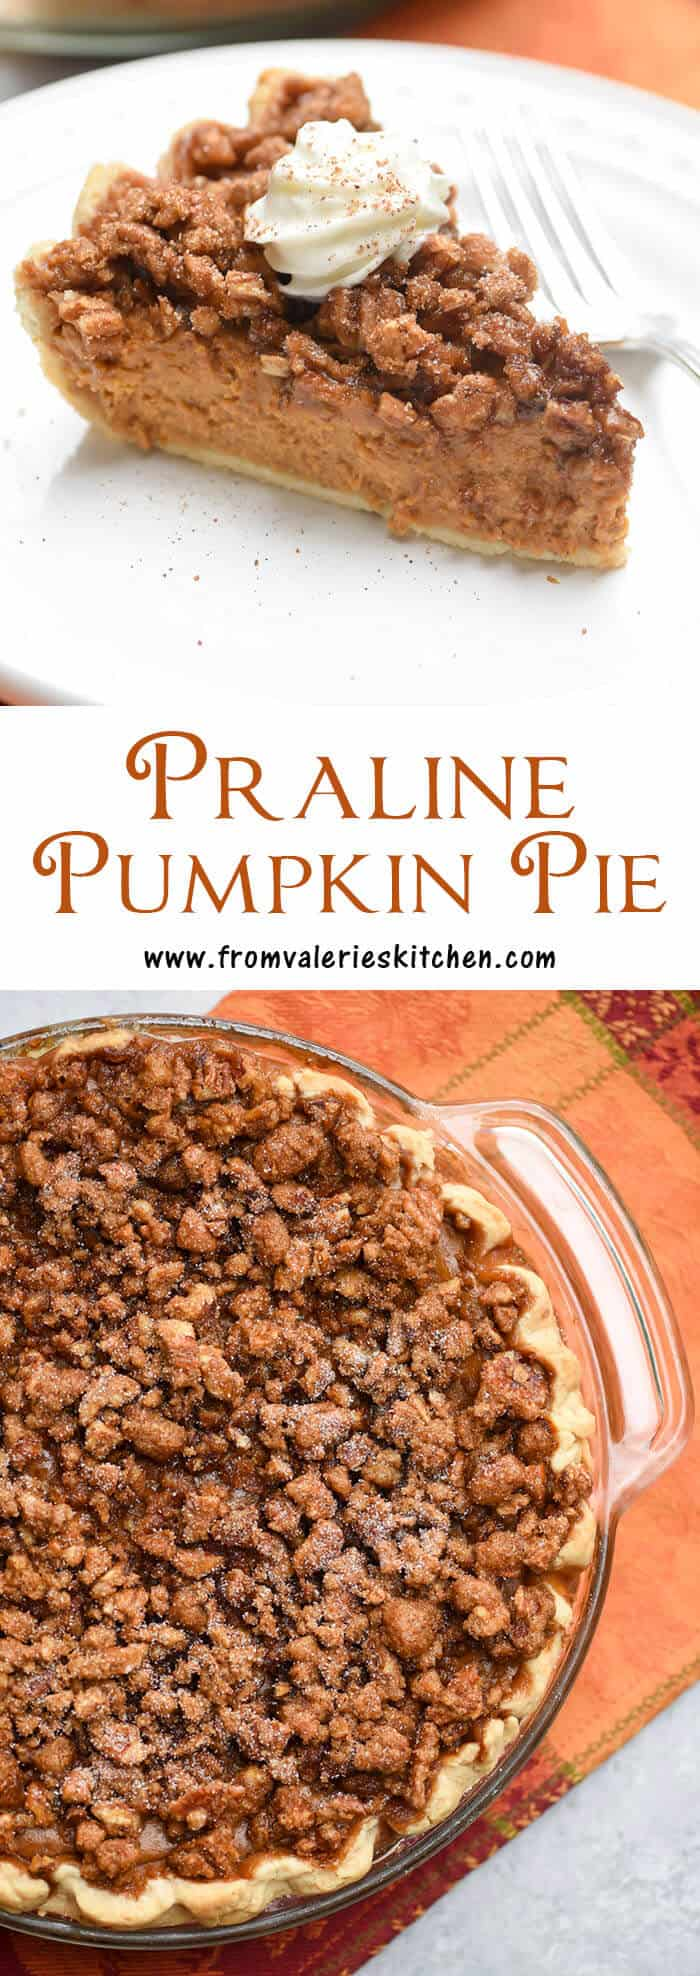 A richly spiced pumpkin pie topped with a sticky sweet pecan praline and baked to perfection. This Praline Pumpkin Pie is a delicious twist on the classic!